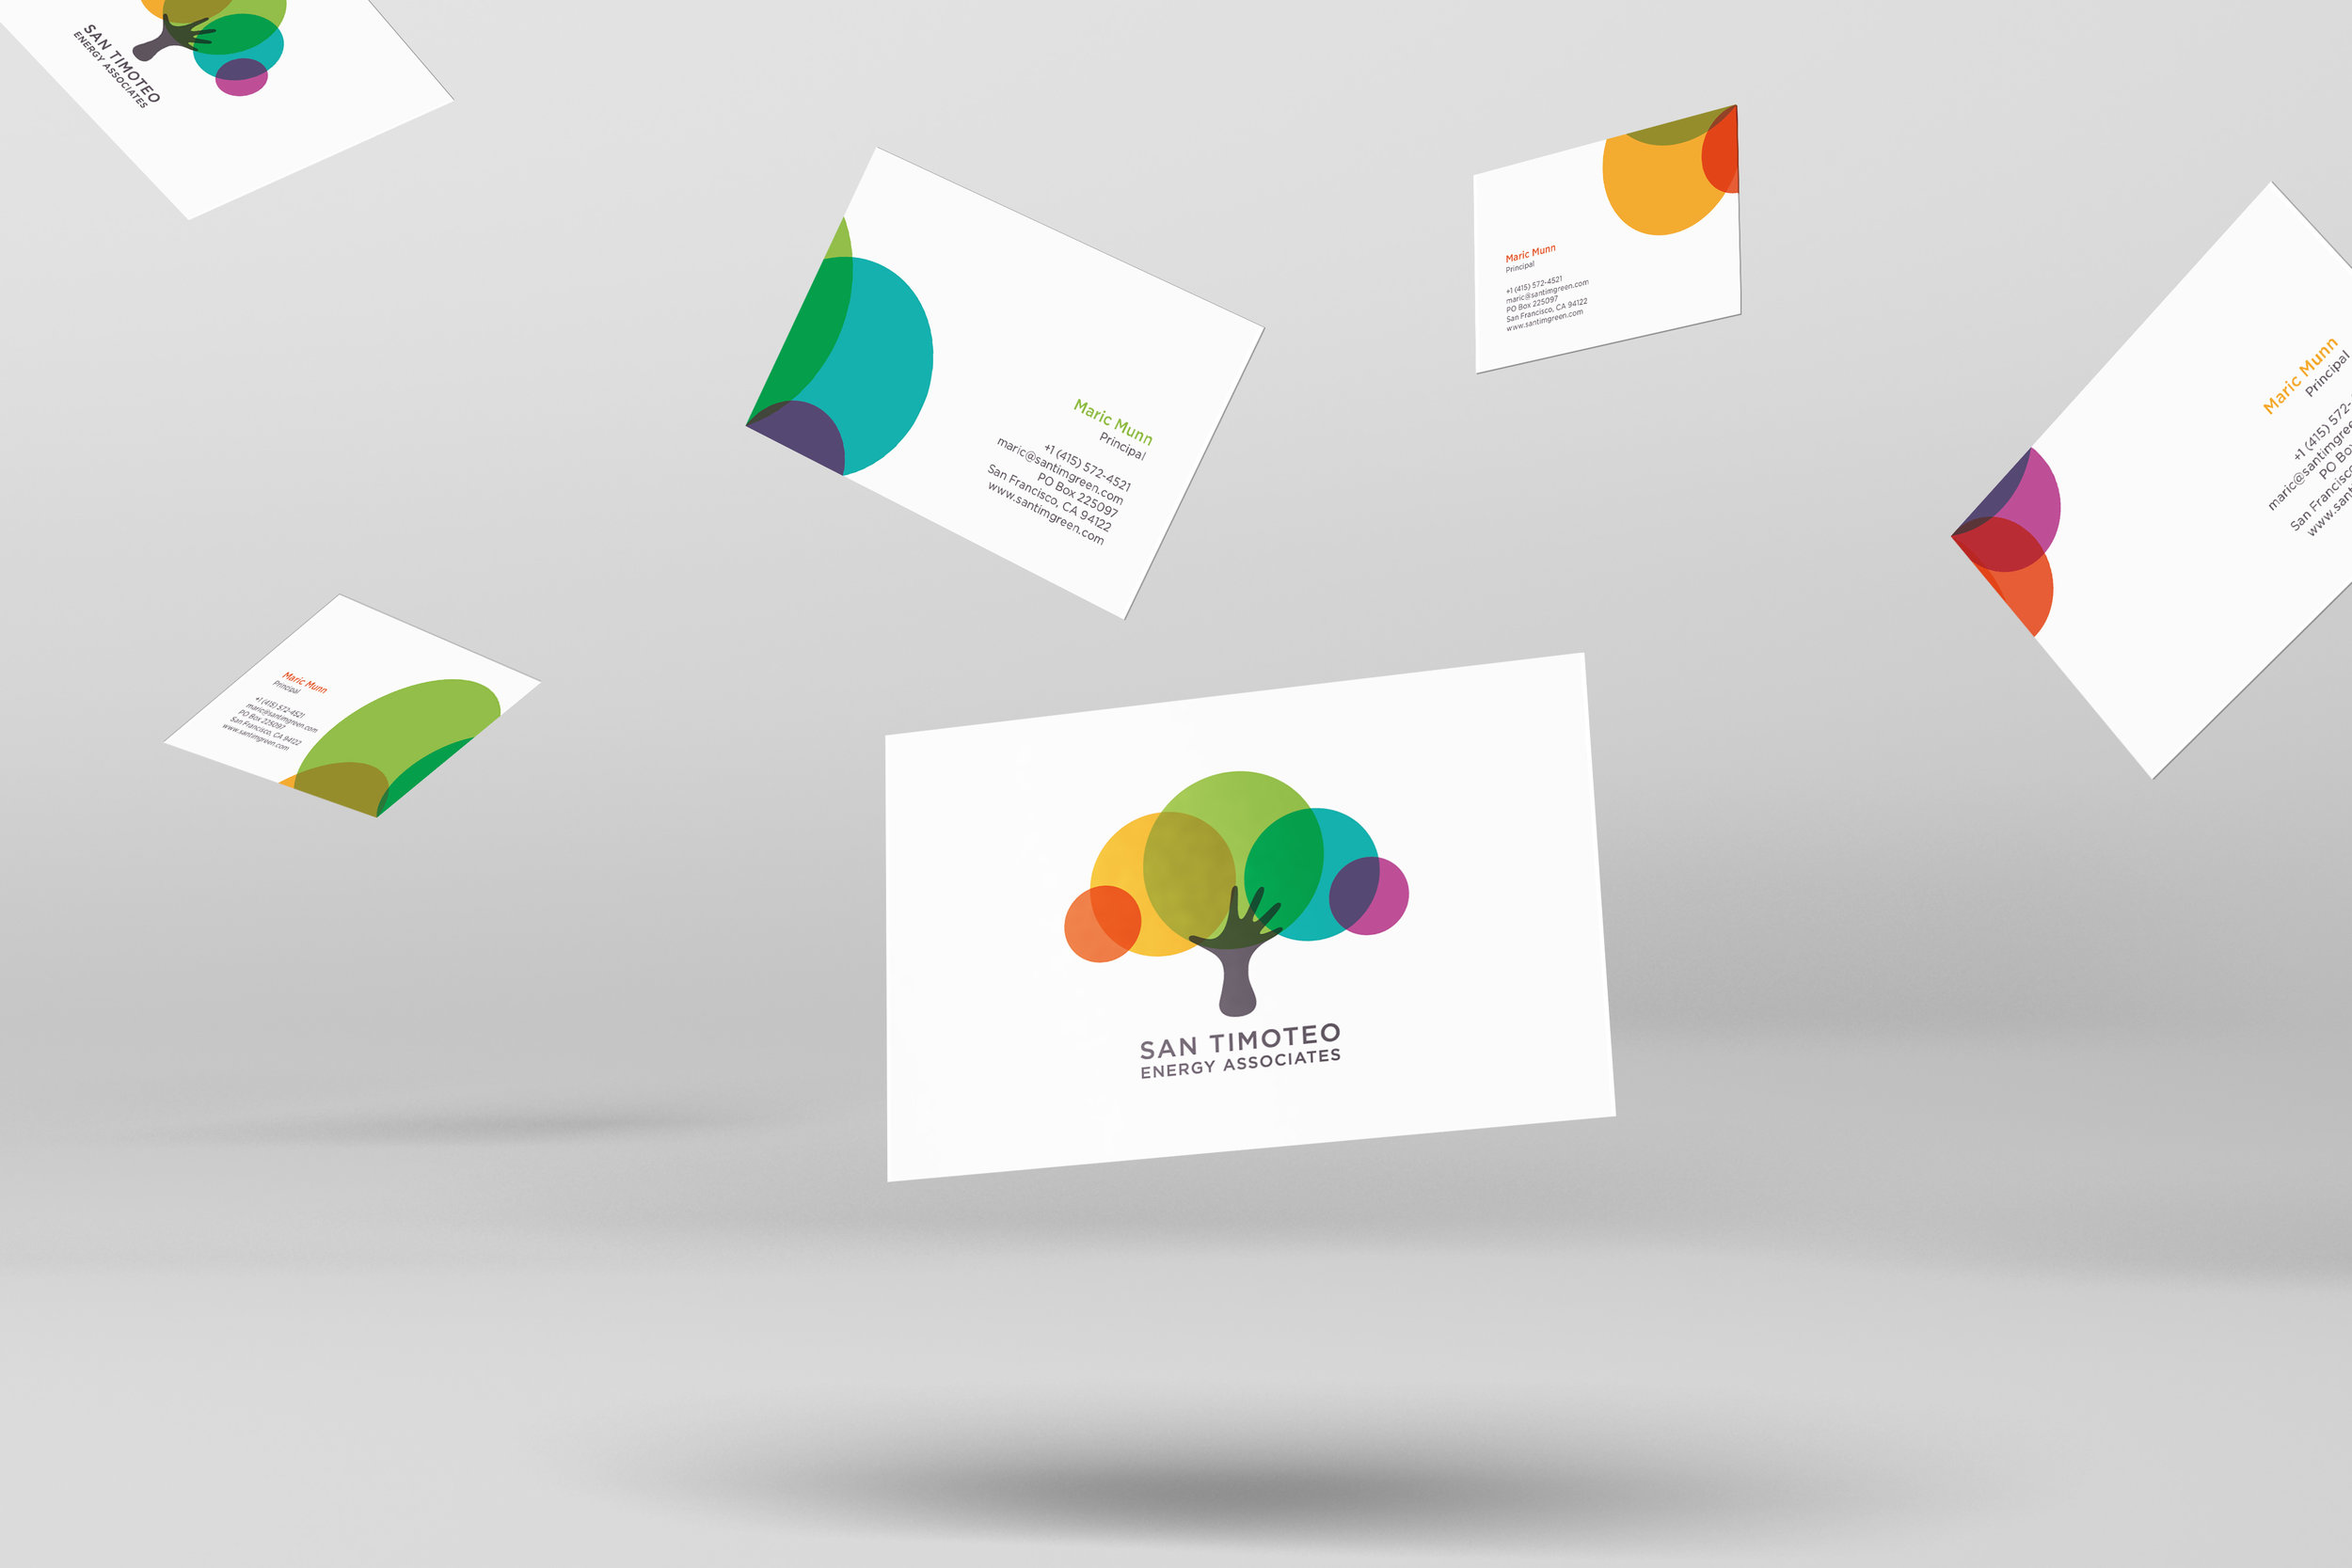 SanT_business-card-mockup_4.jpg